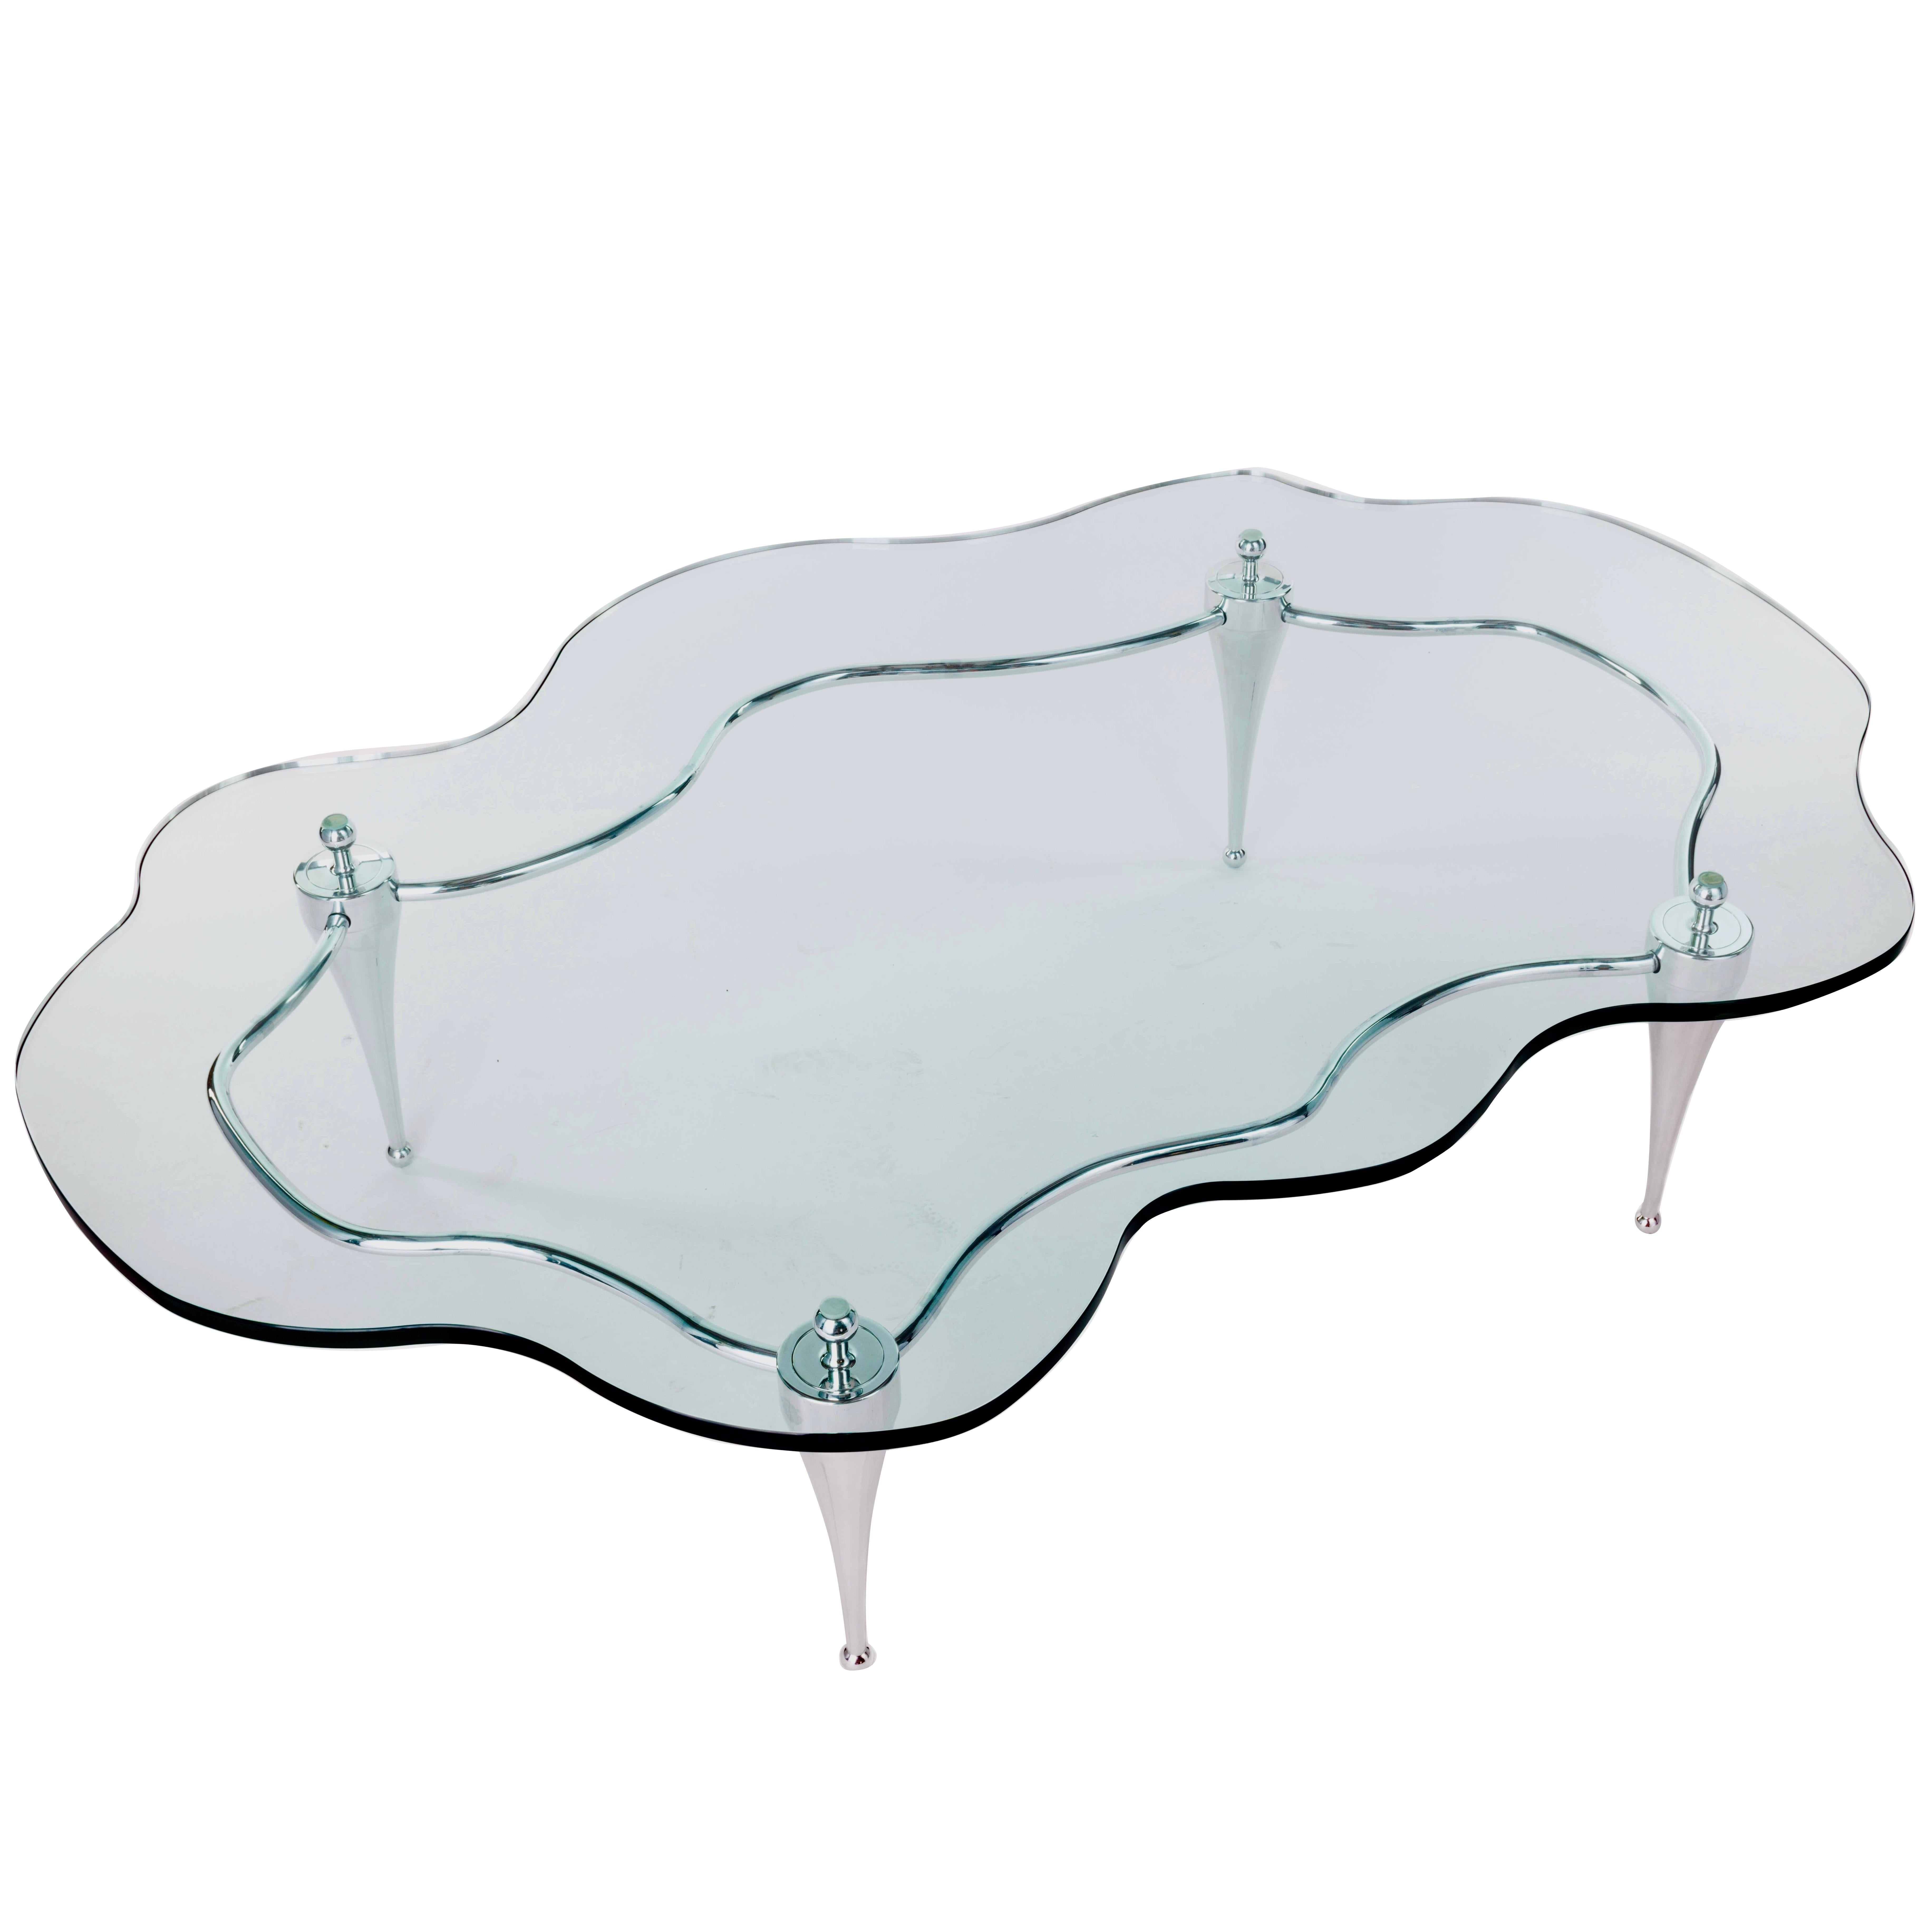 Polished Aluminum And Glass Coffee Table